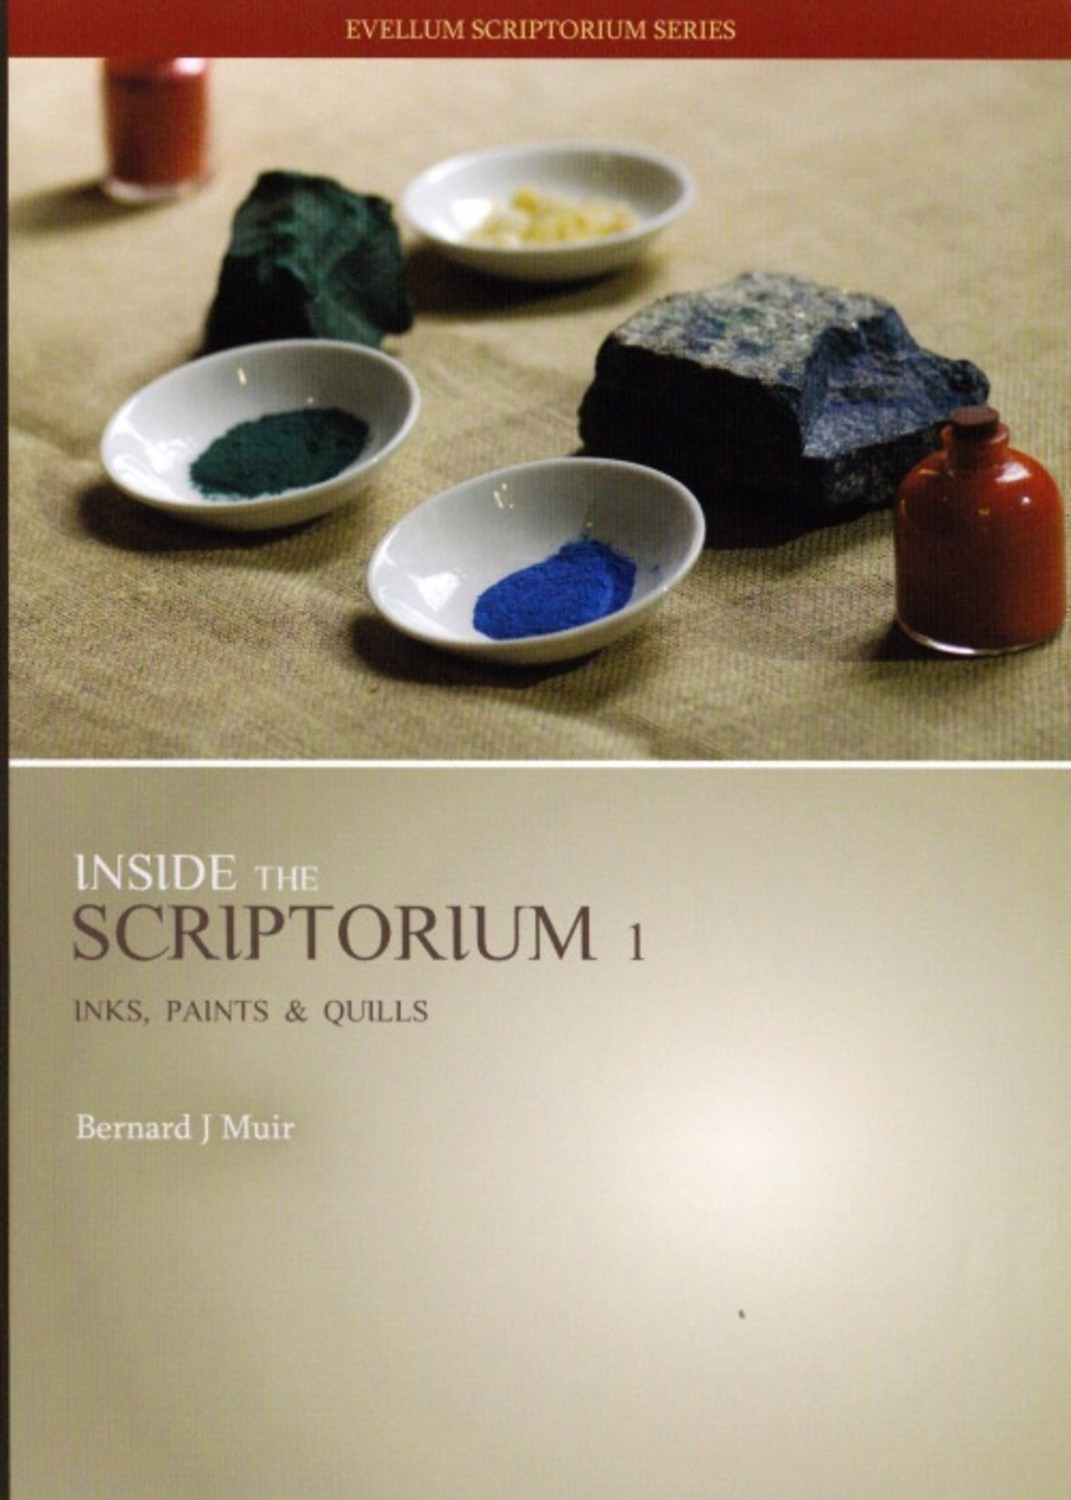 Inside the Scriptorium 1: Inks, Paints & Quills DVD